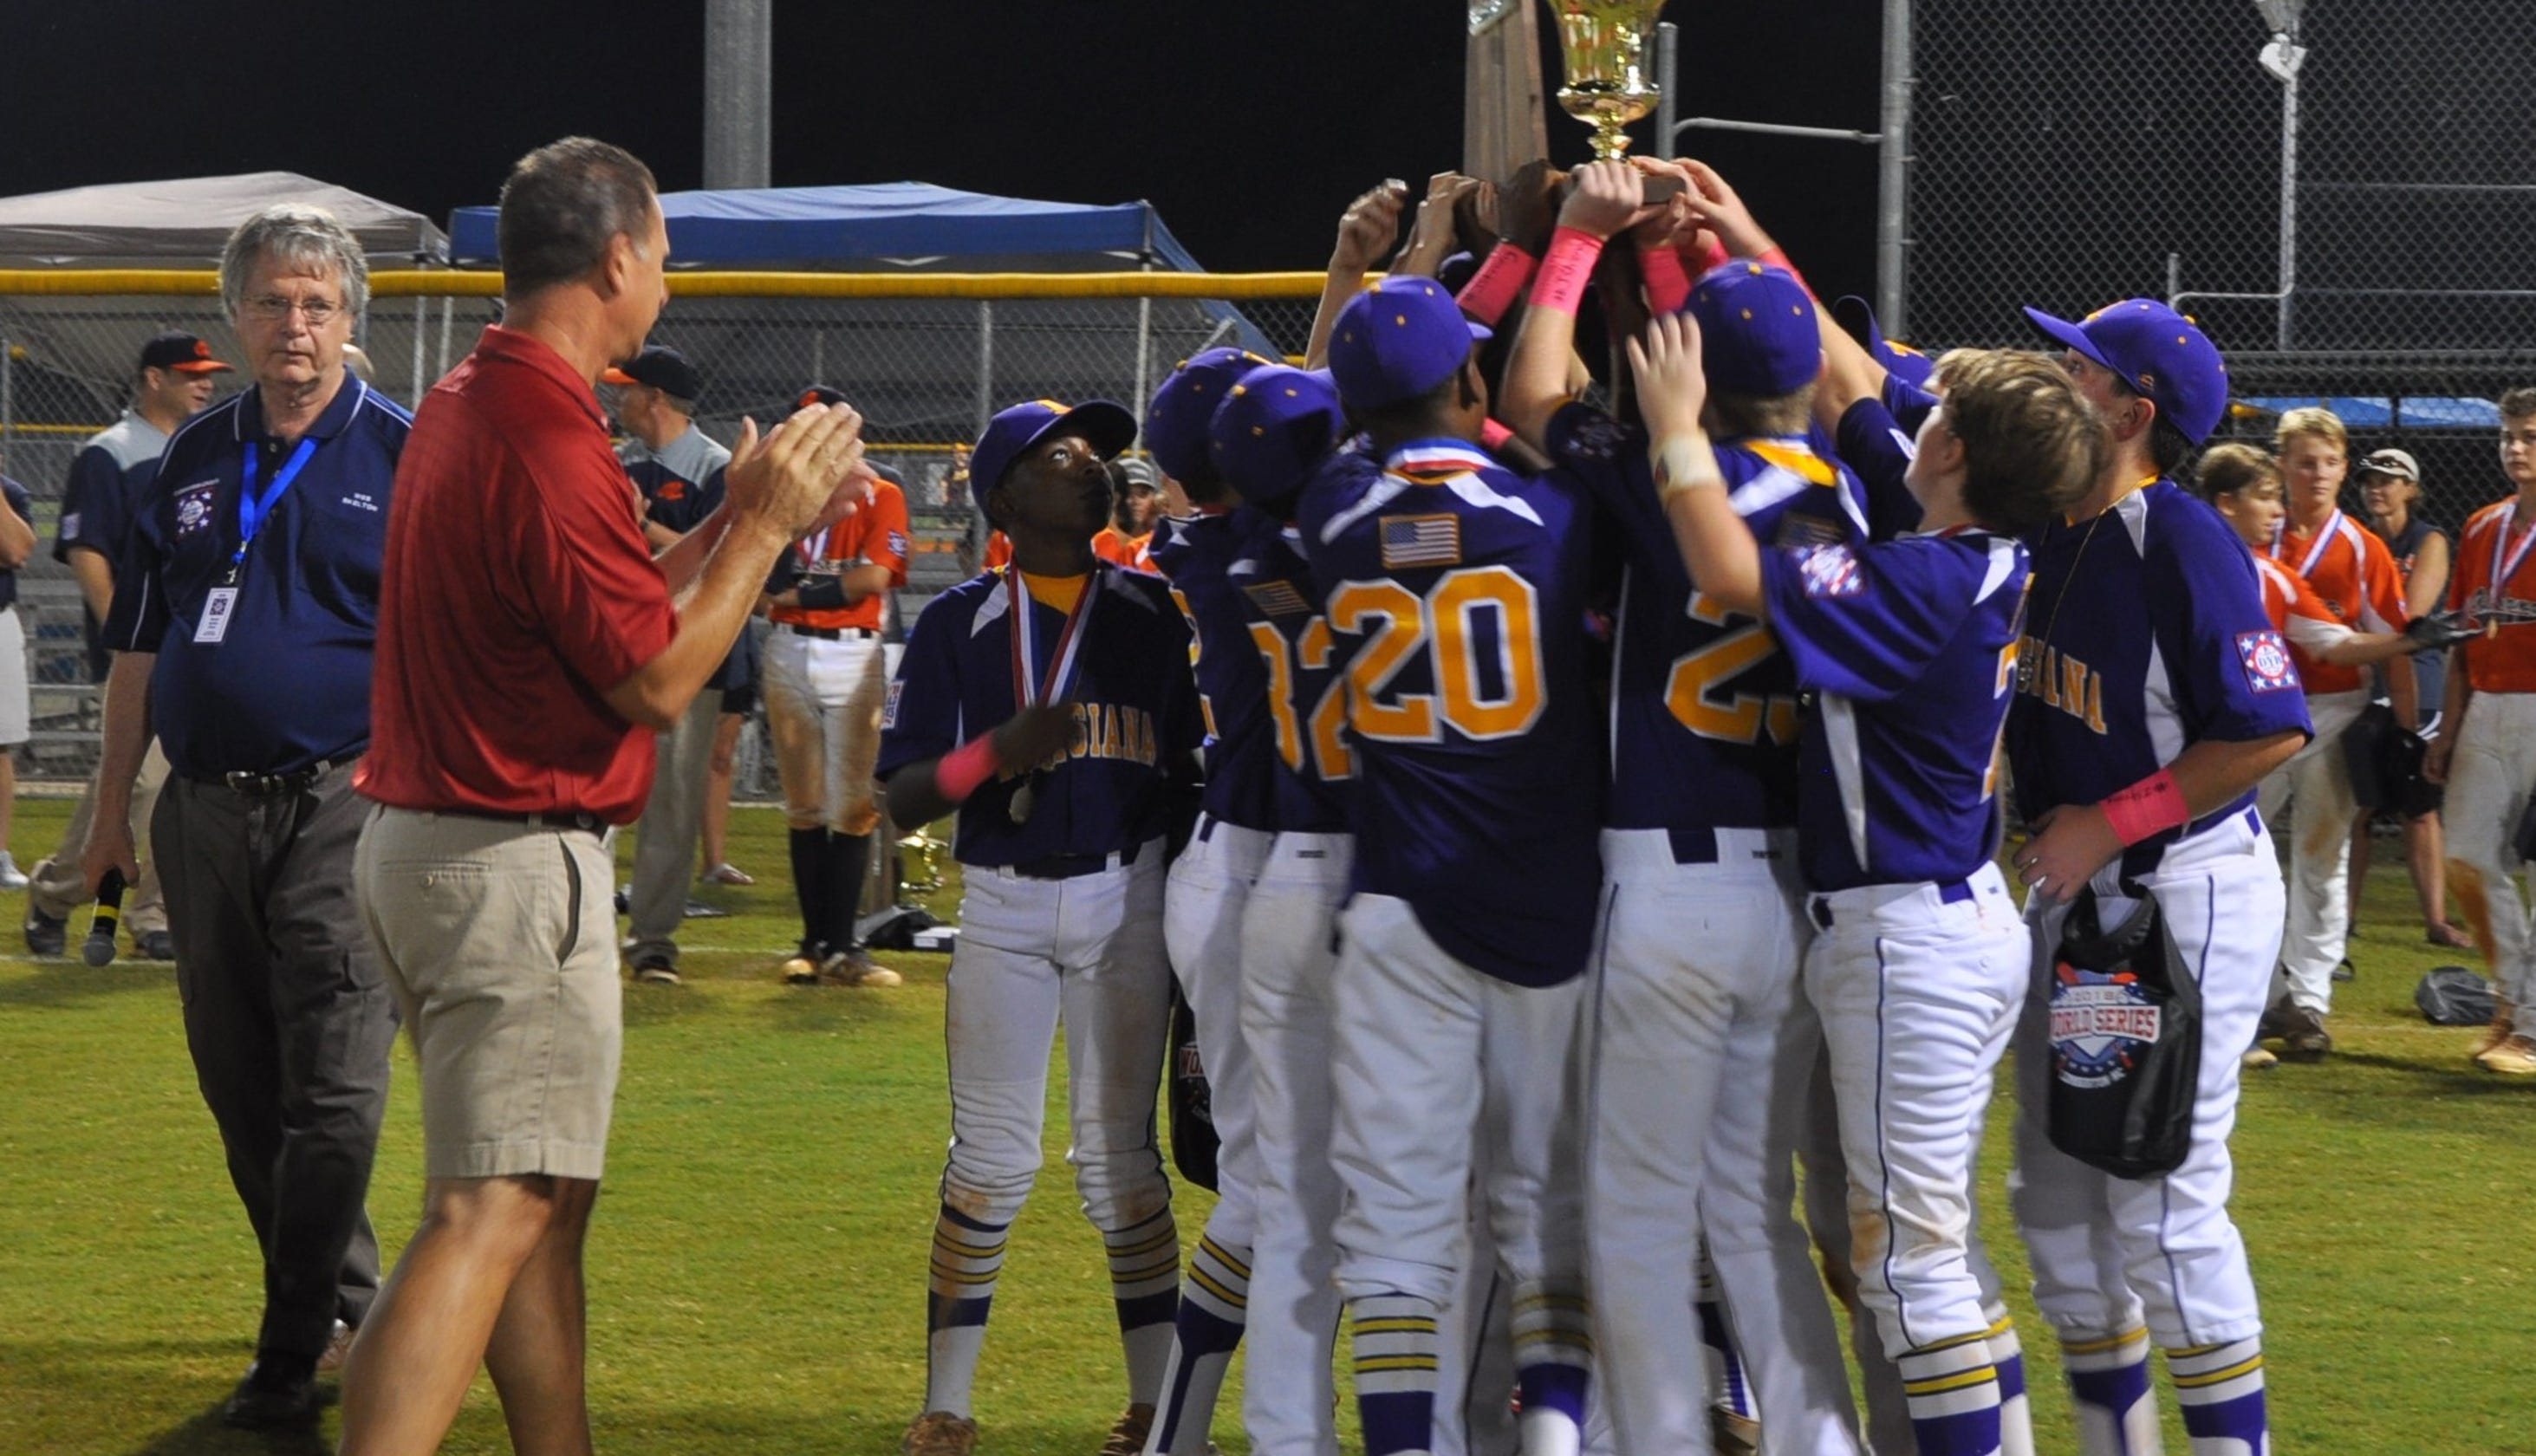 Ruston captures Dixie Youth O-Zone World Series championship